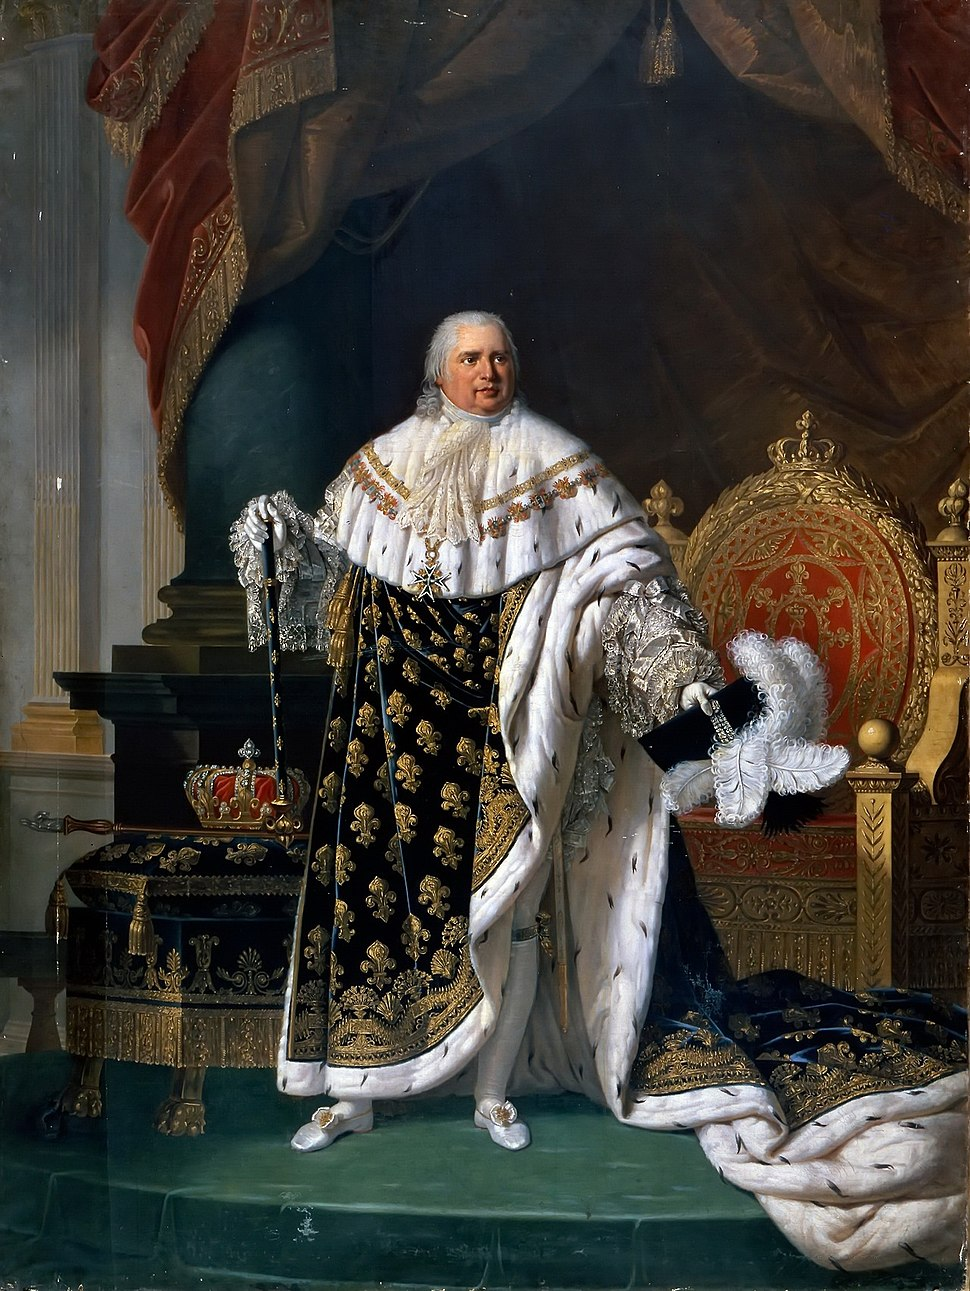 Lef%C3%A8vre - Louis XVIII of France in Coronation Robes